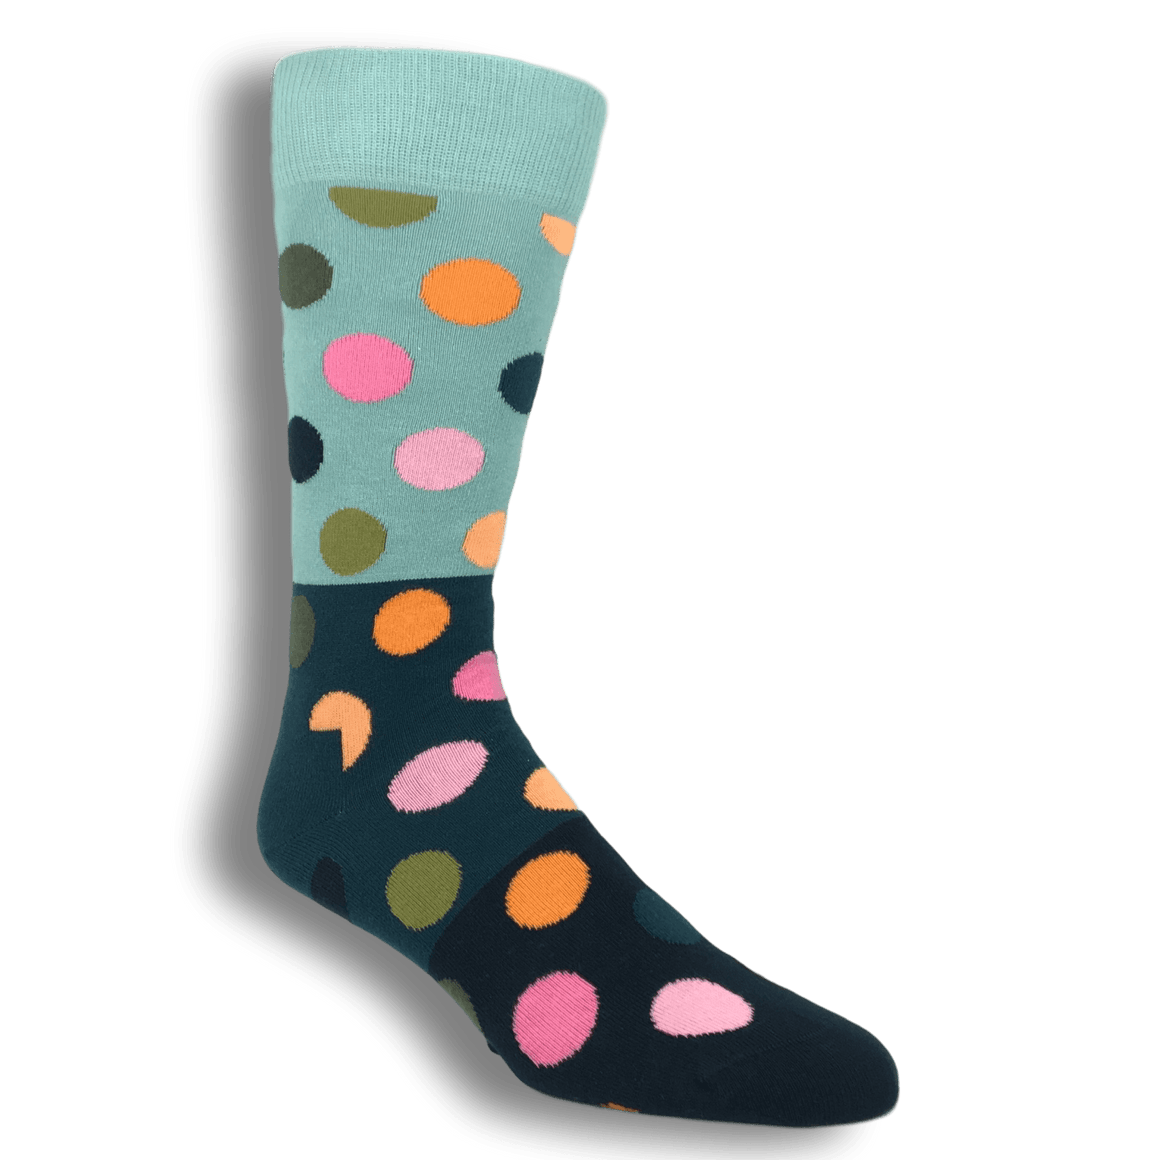 Grey, Blue, and Black Big Dots Block Socks by Happy Socks - The Sock Spot